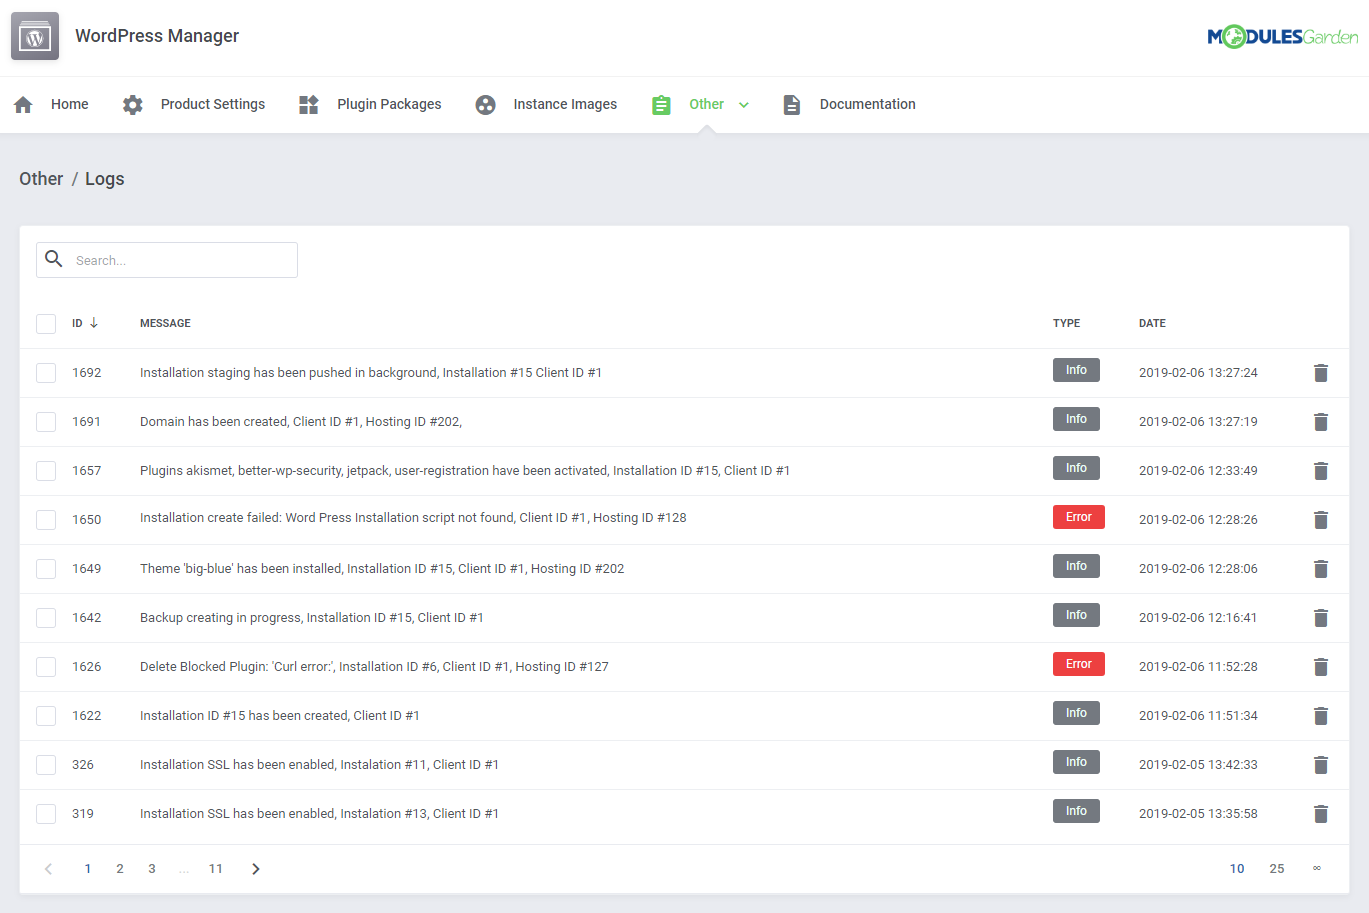 WordPress Manager For WHMCS: Module Screenshot 29